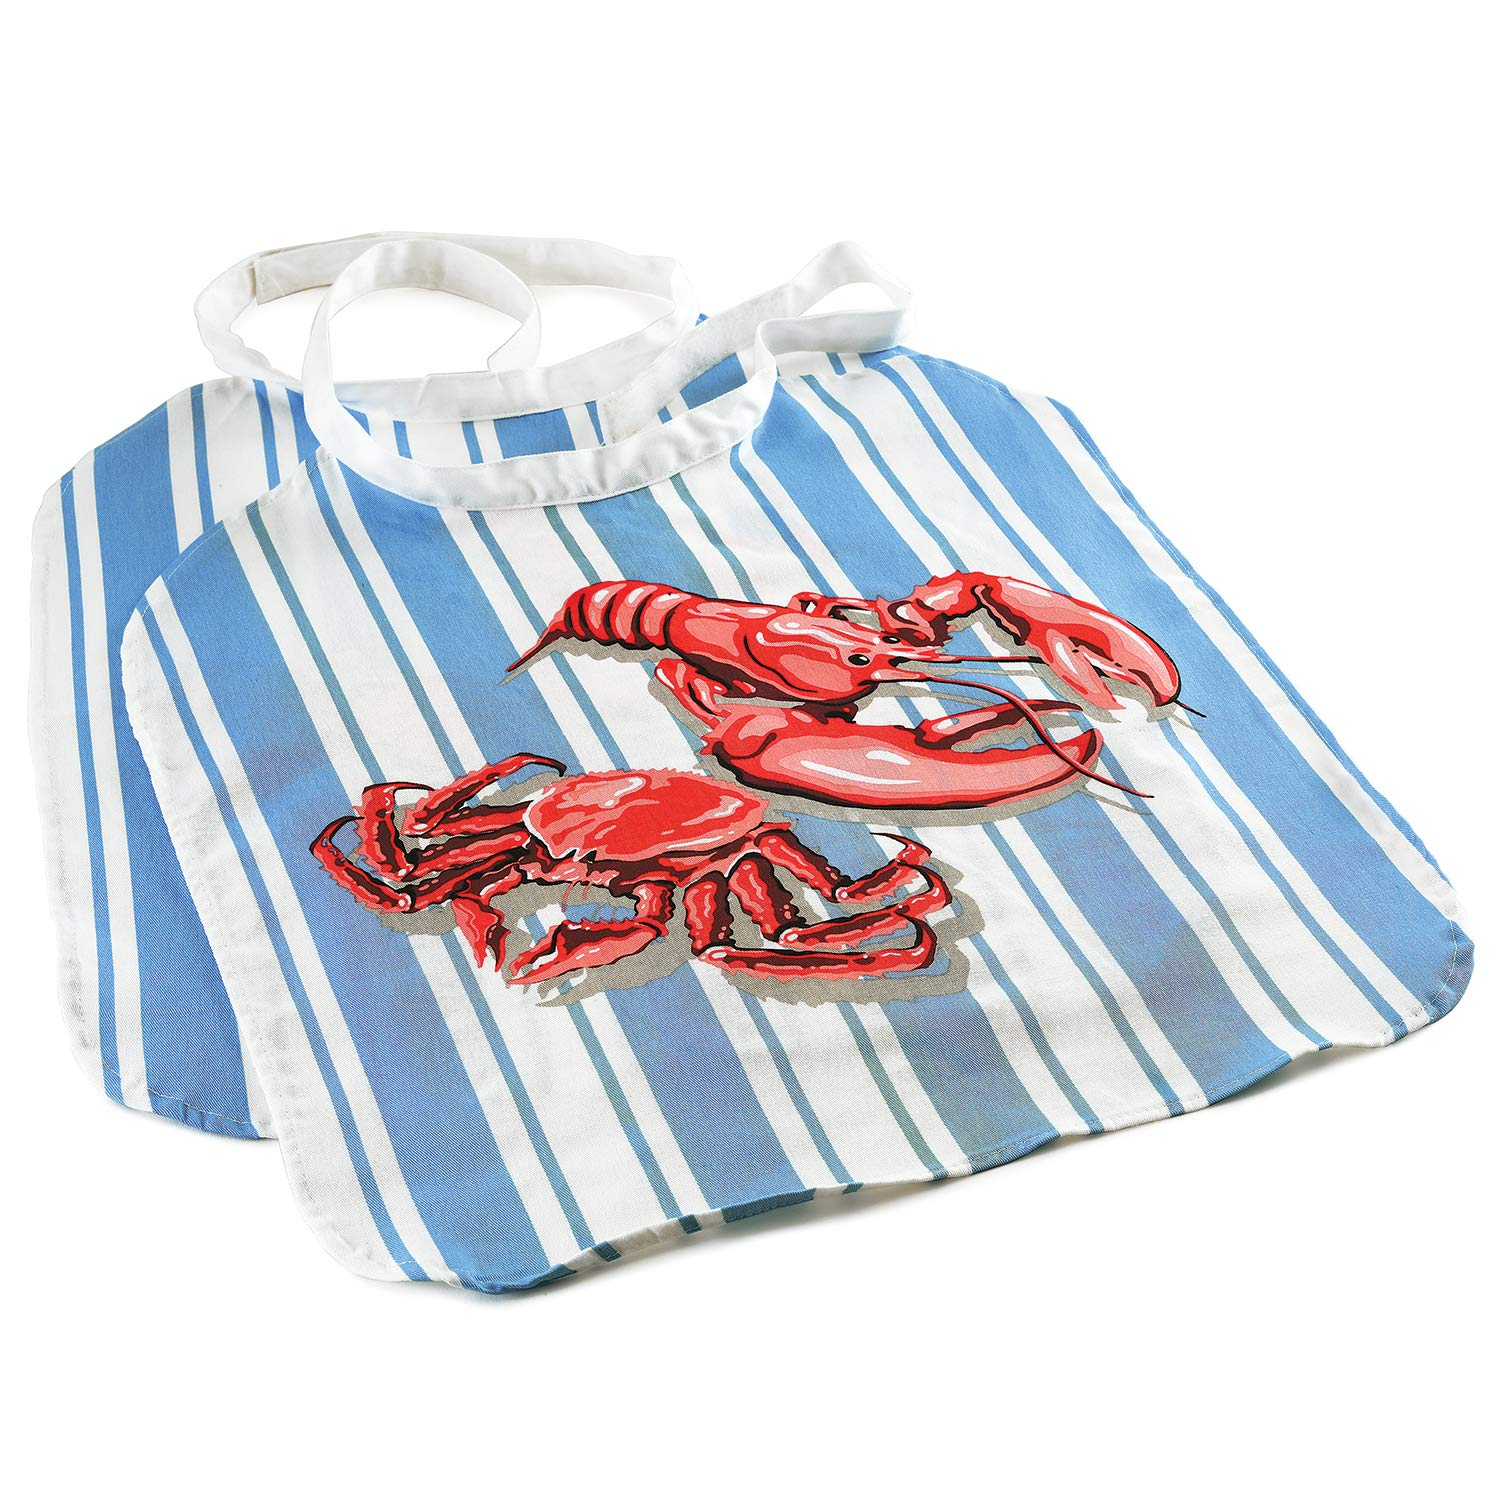 Norpro Cotton Seafood Lobster Bib, Set of 4 by Norpro